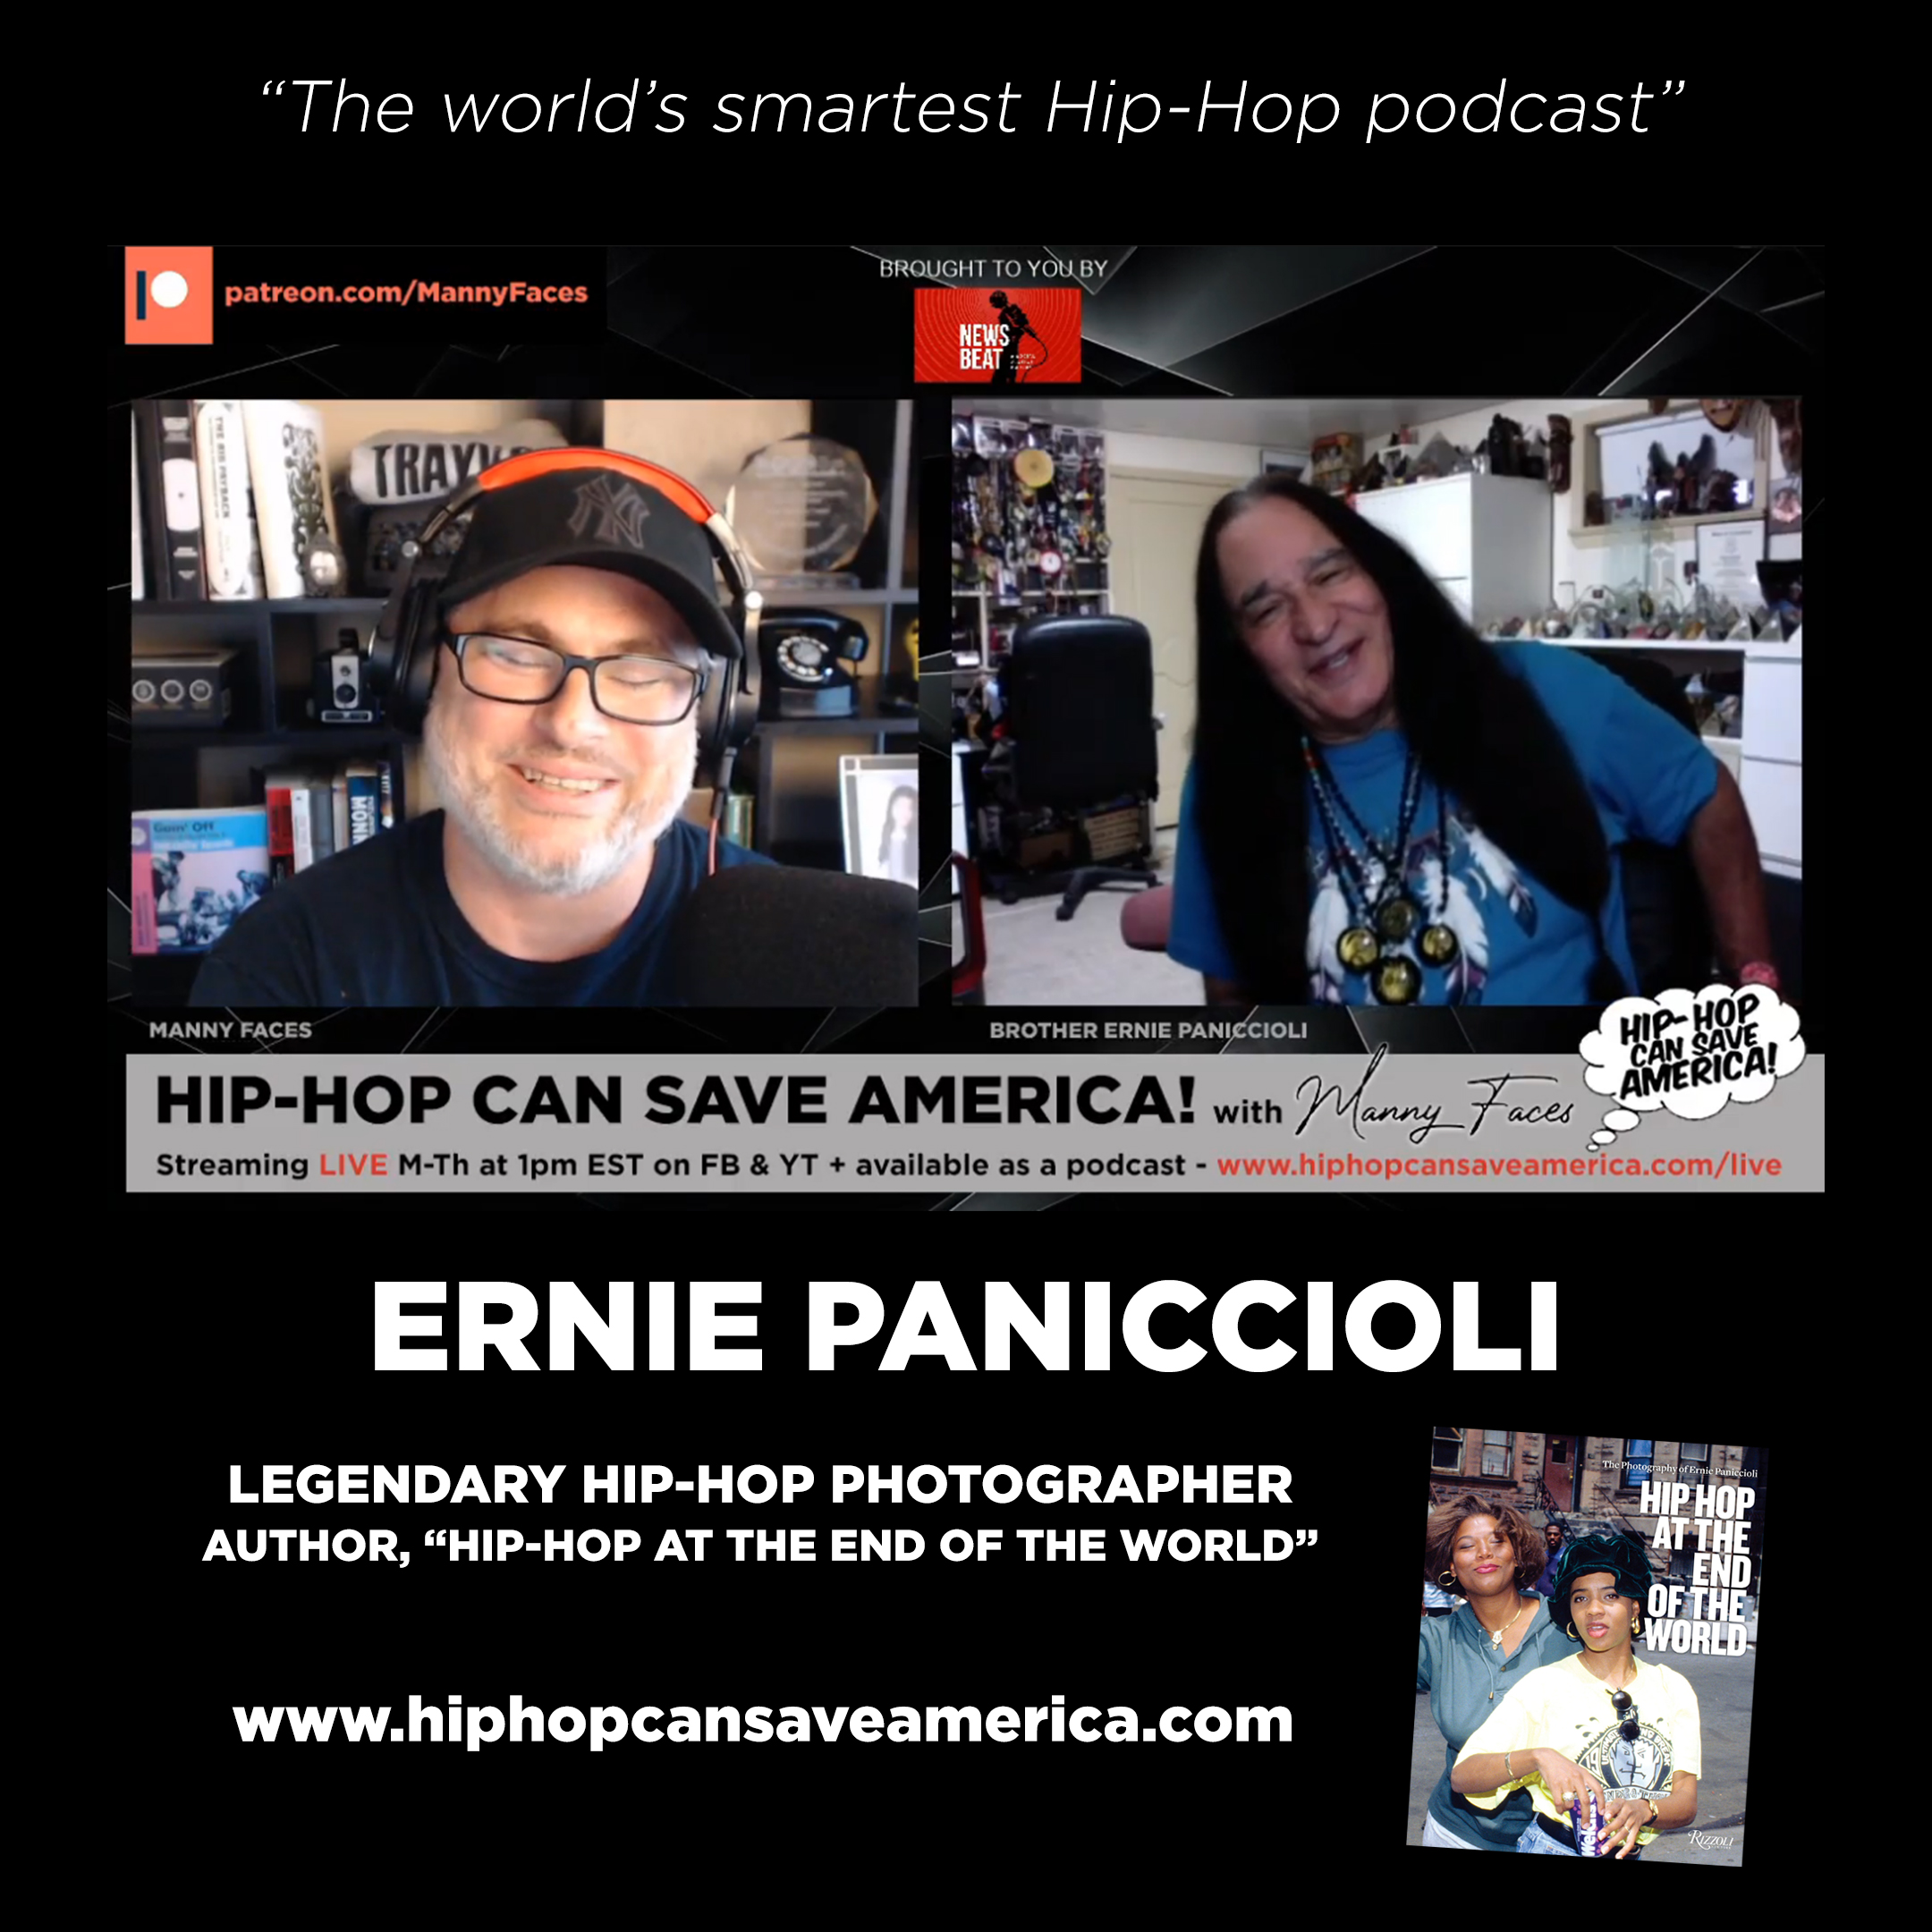 Artwork for podcast Hip-Hop Can Save America